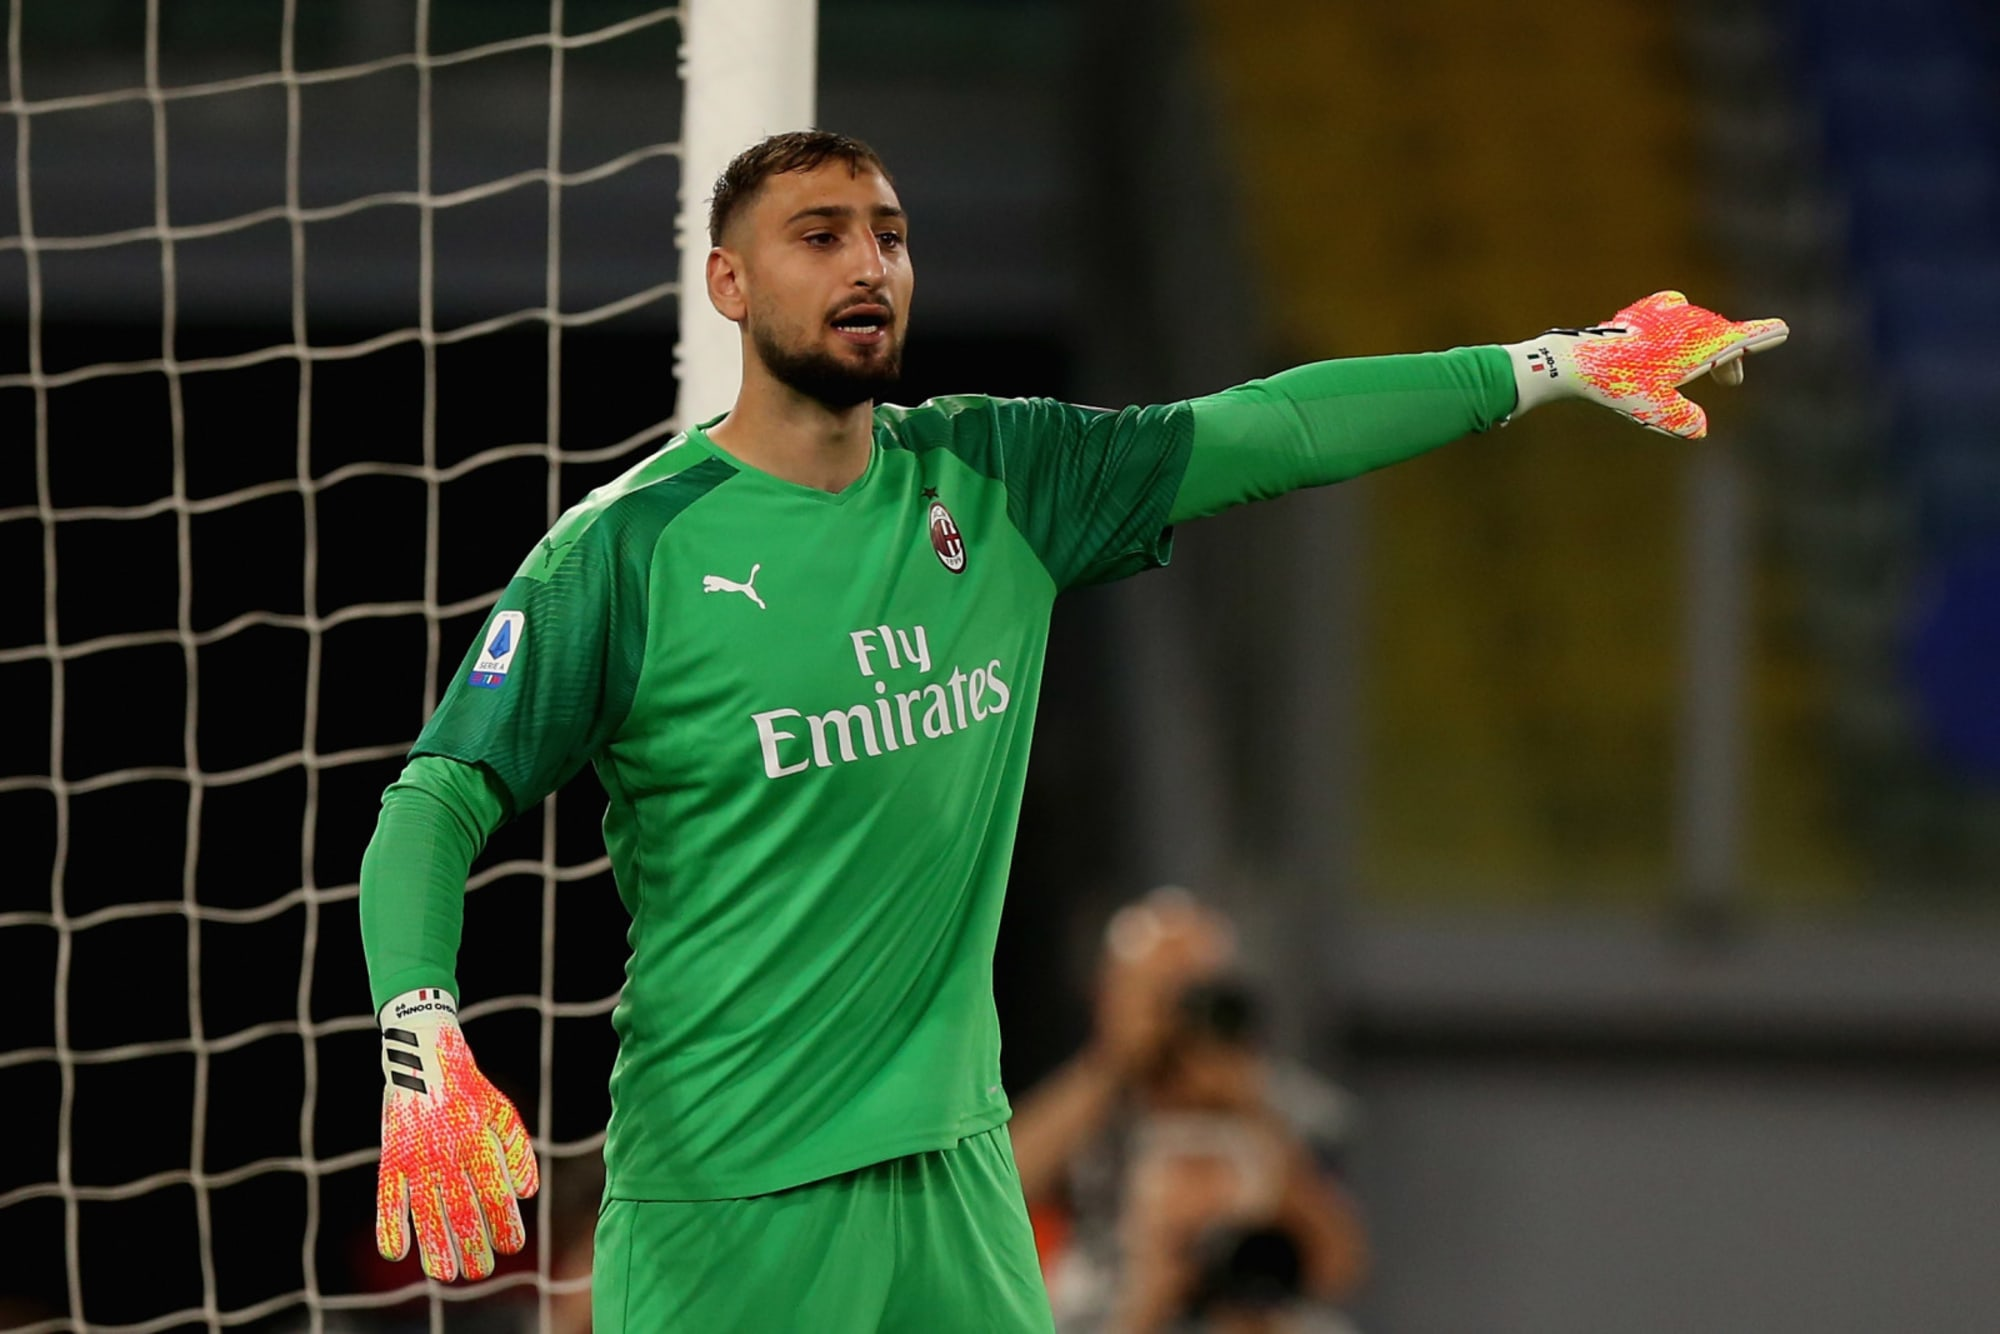 Chelsea's pursuit of Gianluigi Donnarumma as potential free agency looms